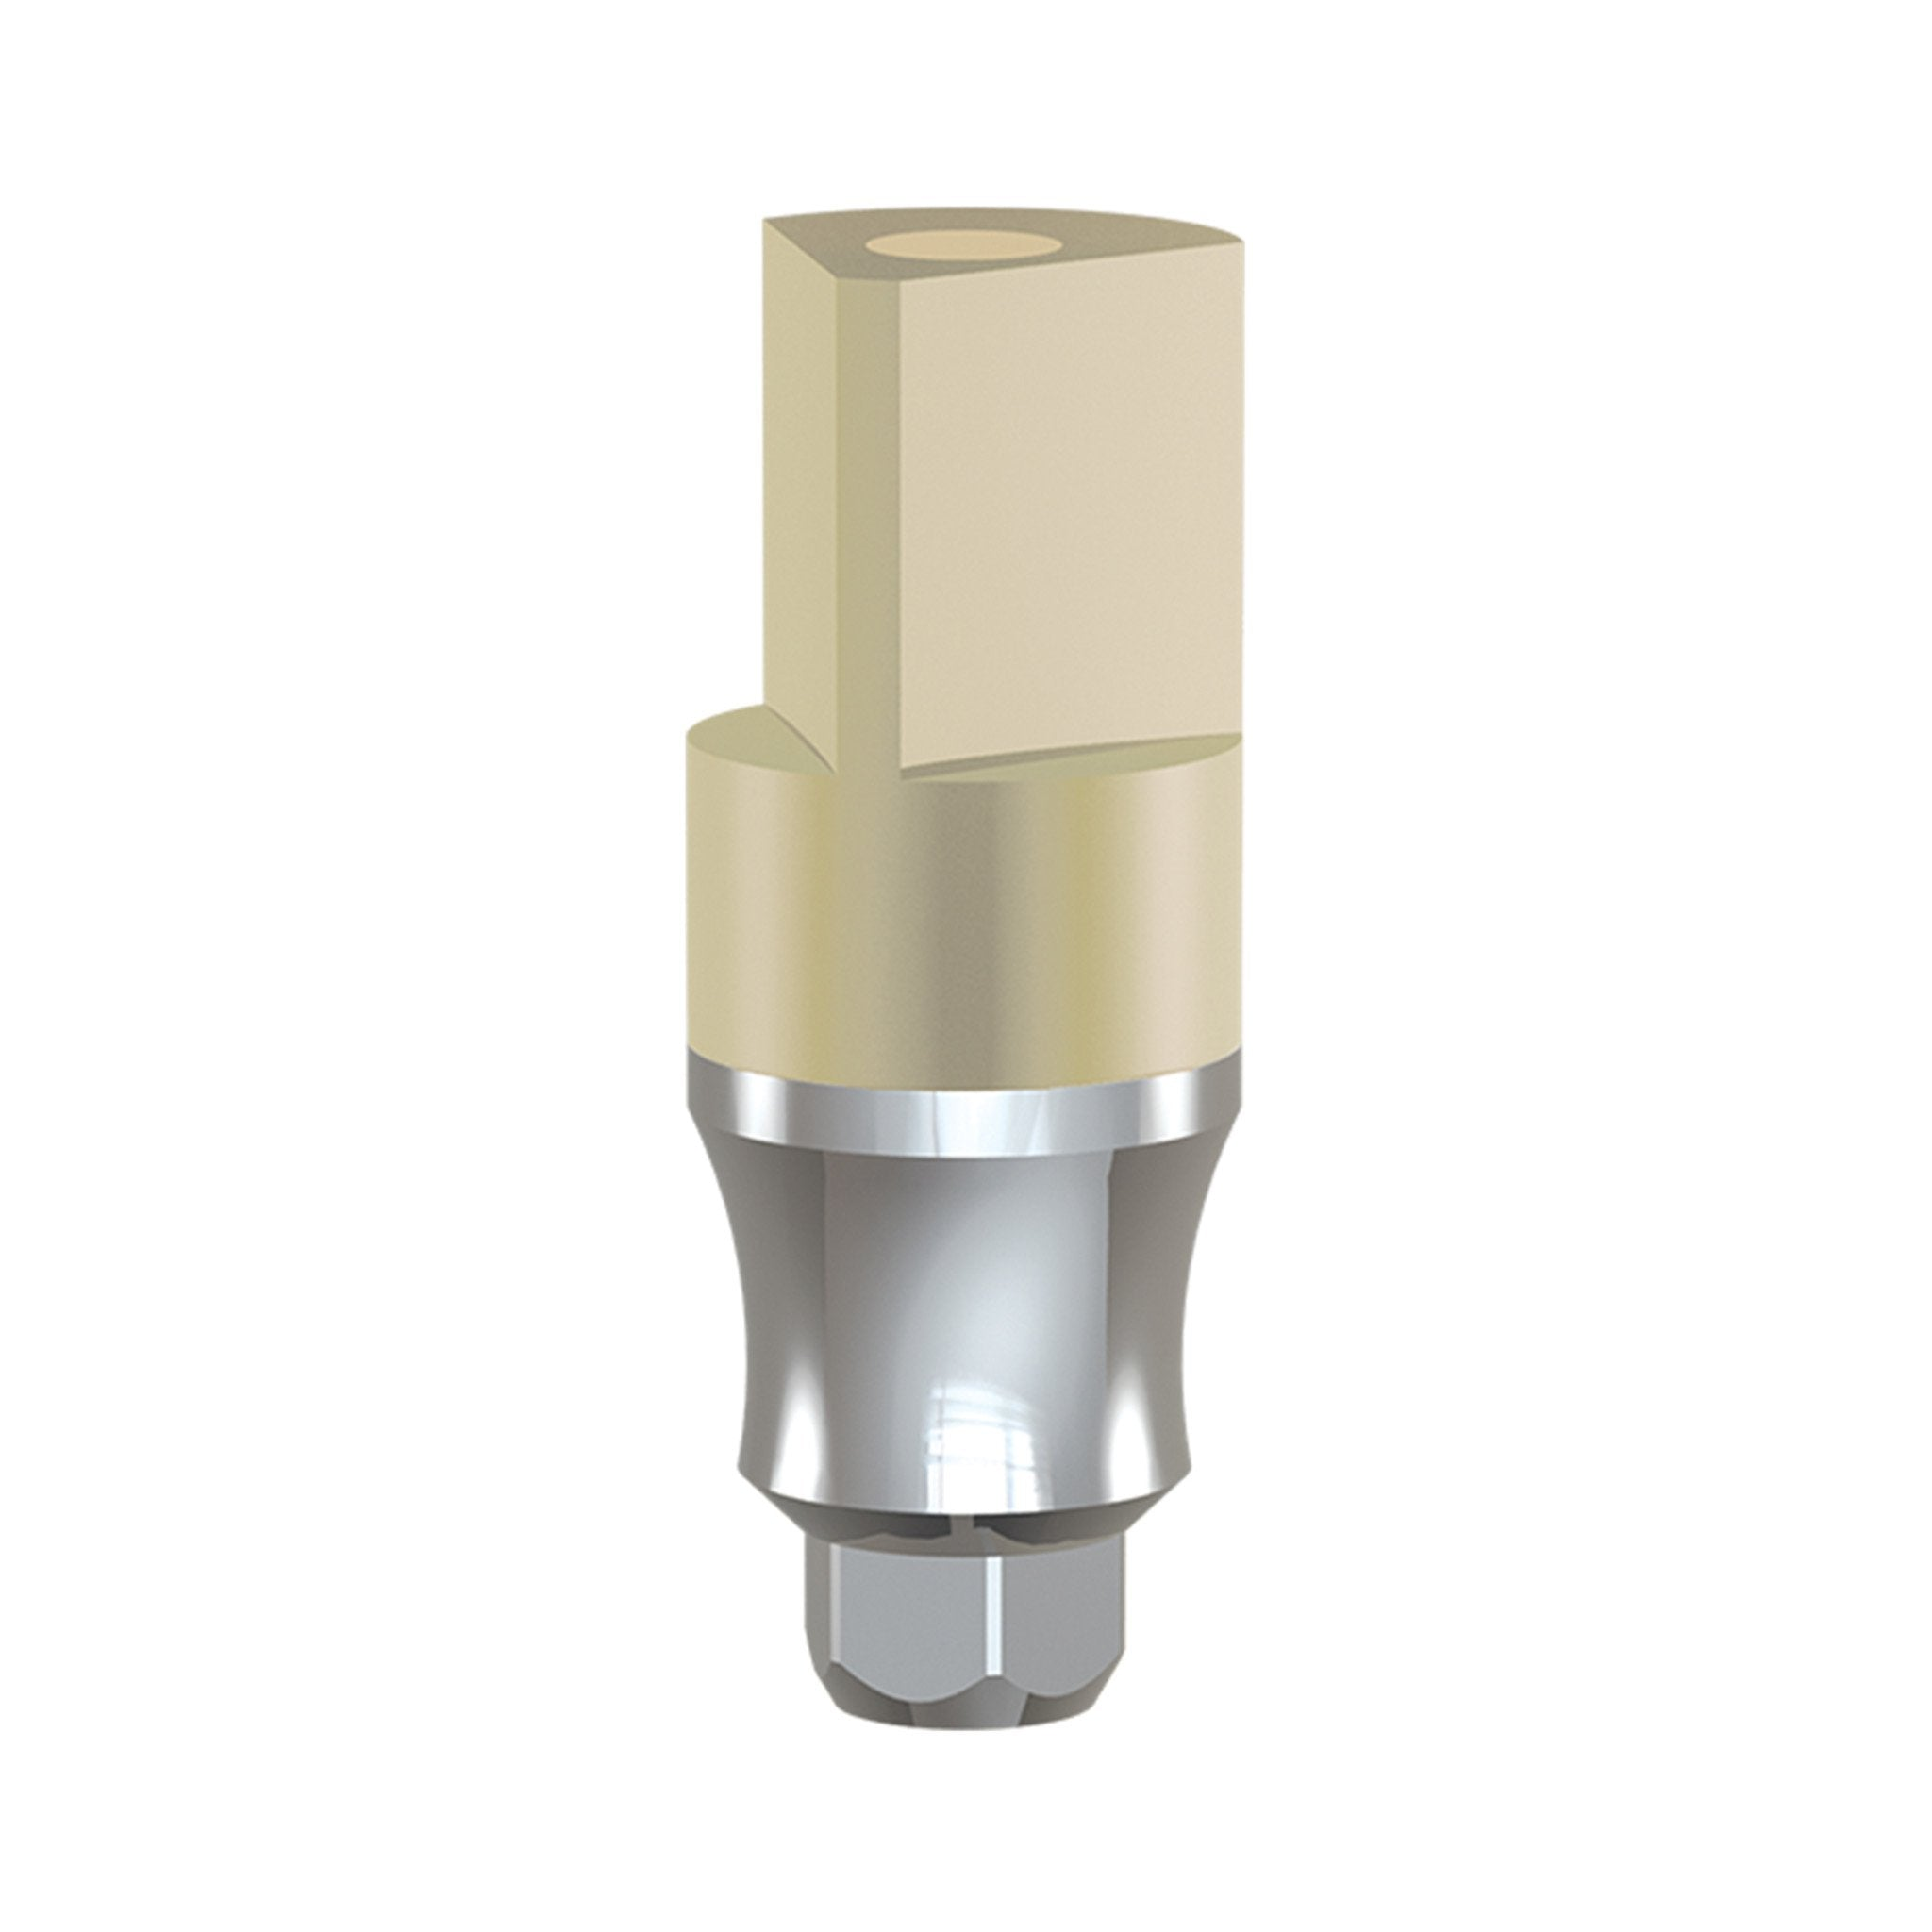 Int Hex SP Scan Abutment | K3